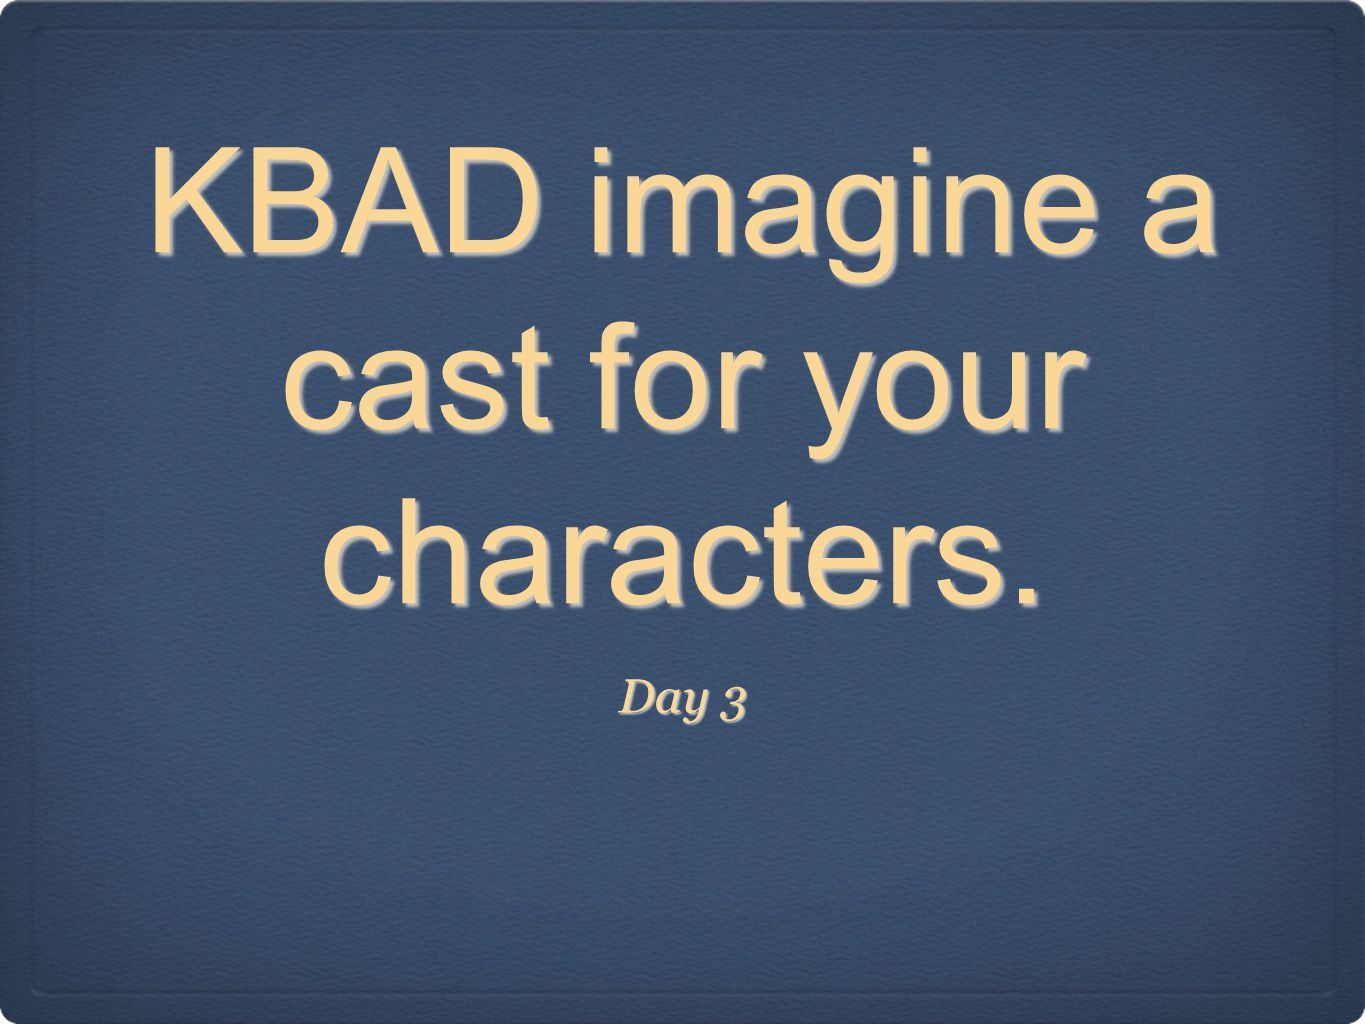 KBAD imagine a cast for your characters.